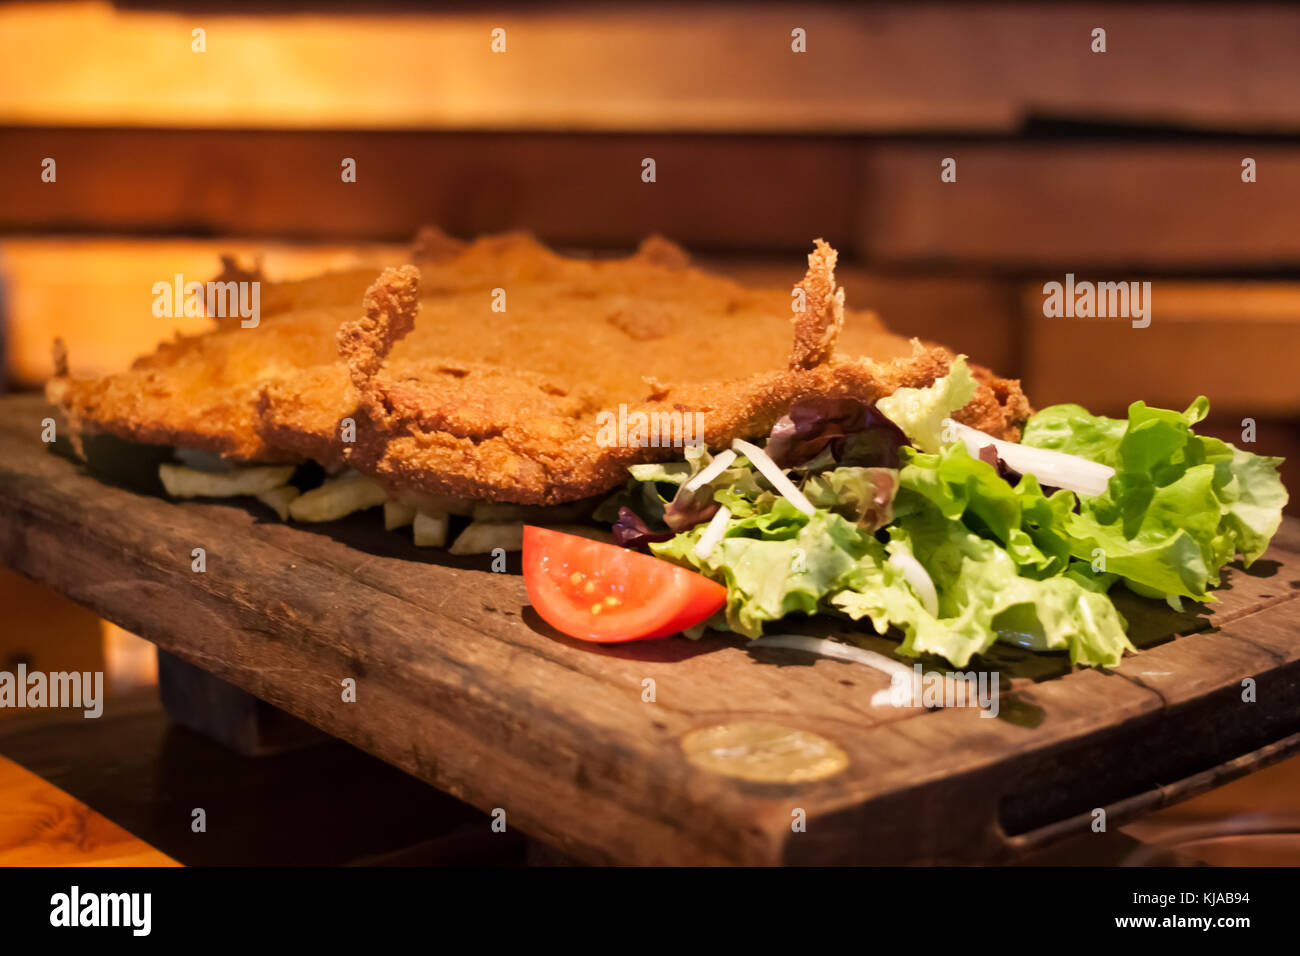 Cachopo, a typical Asturian dish that consists of two large breaded veal fillets filled with ham and cheese - Stock Image